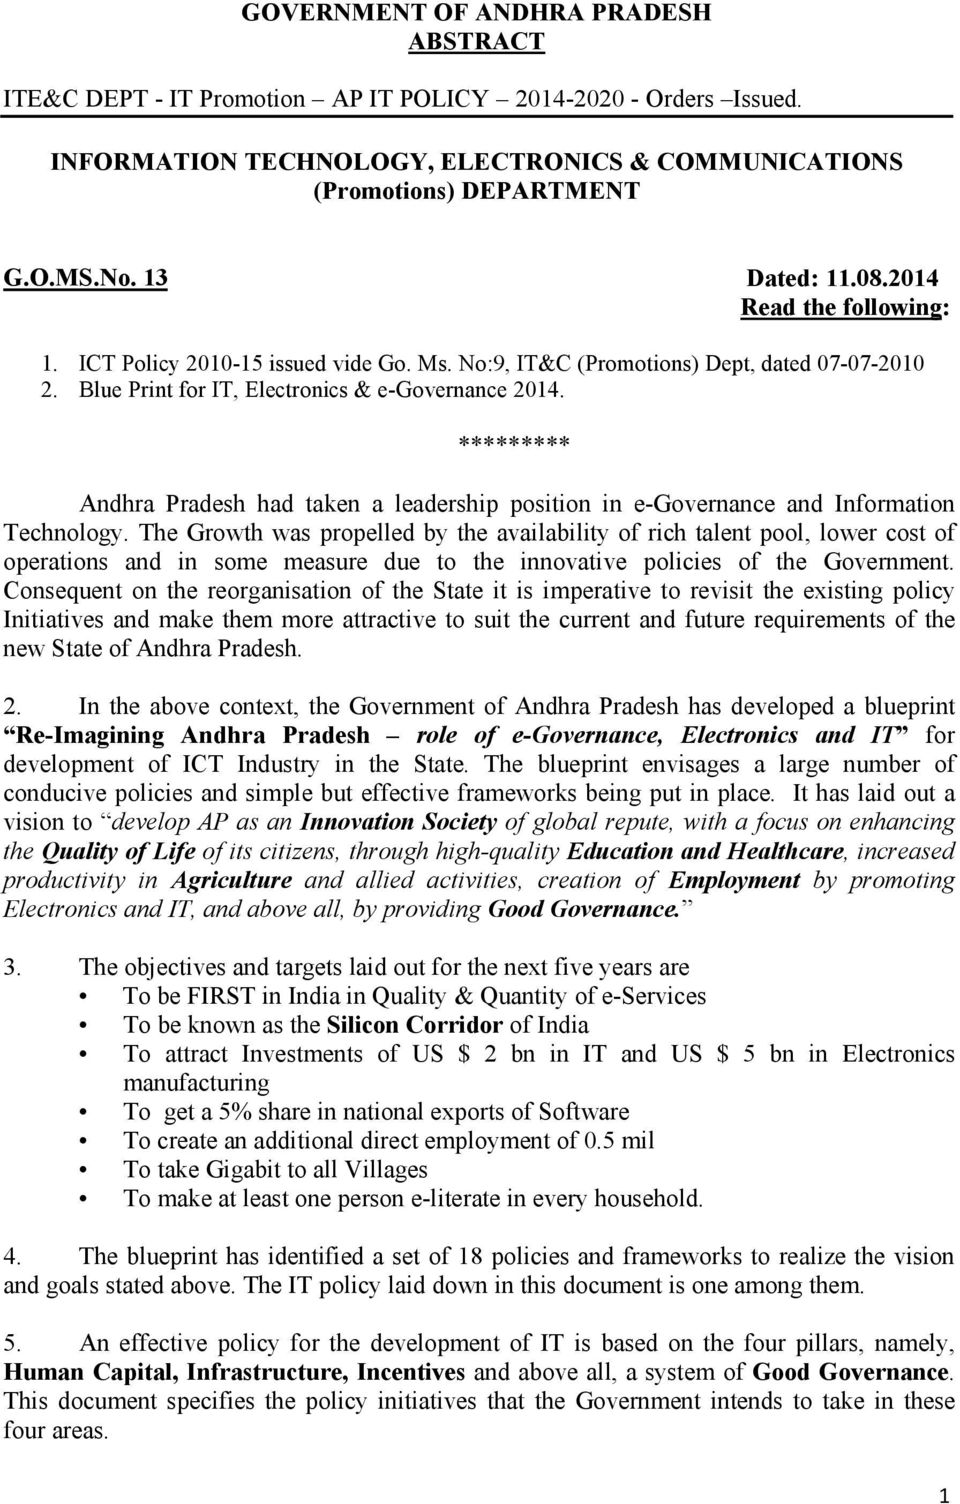 GOVERNMENT OF ANDHRA PRADESH ABSTRACT  ITE&C DEPT - IT